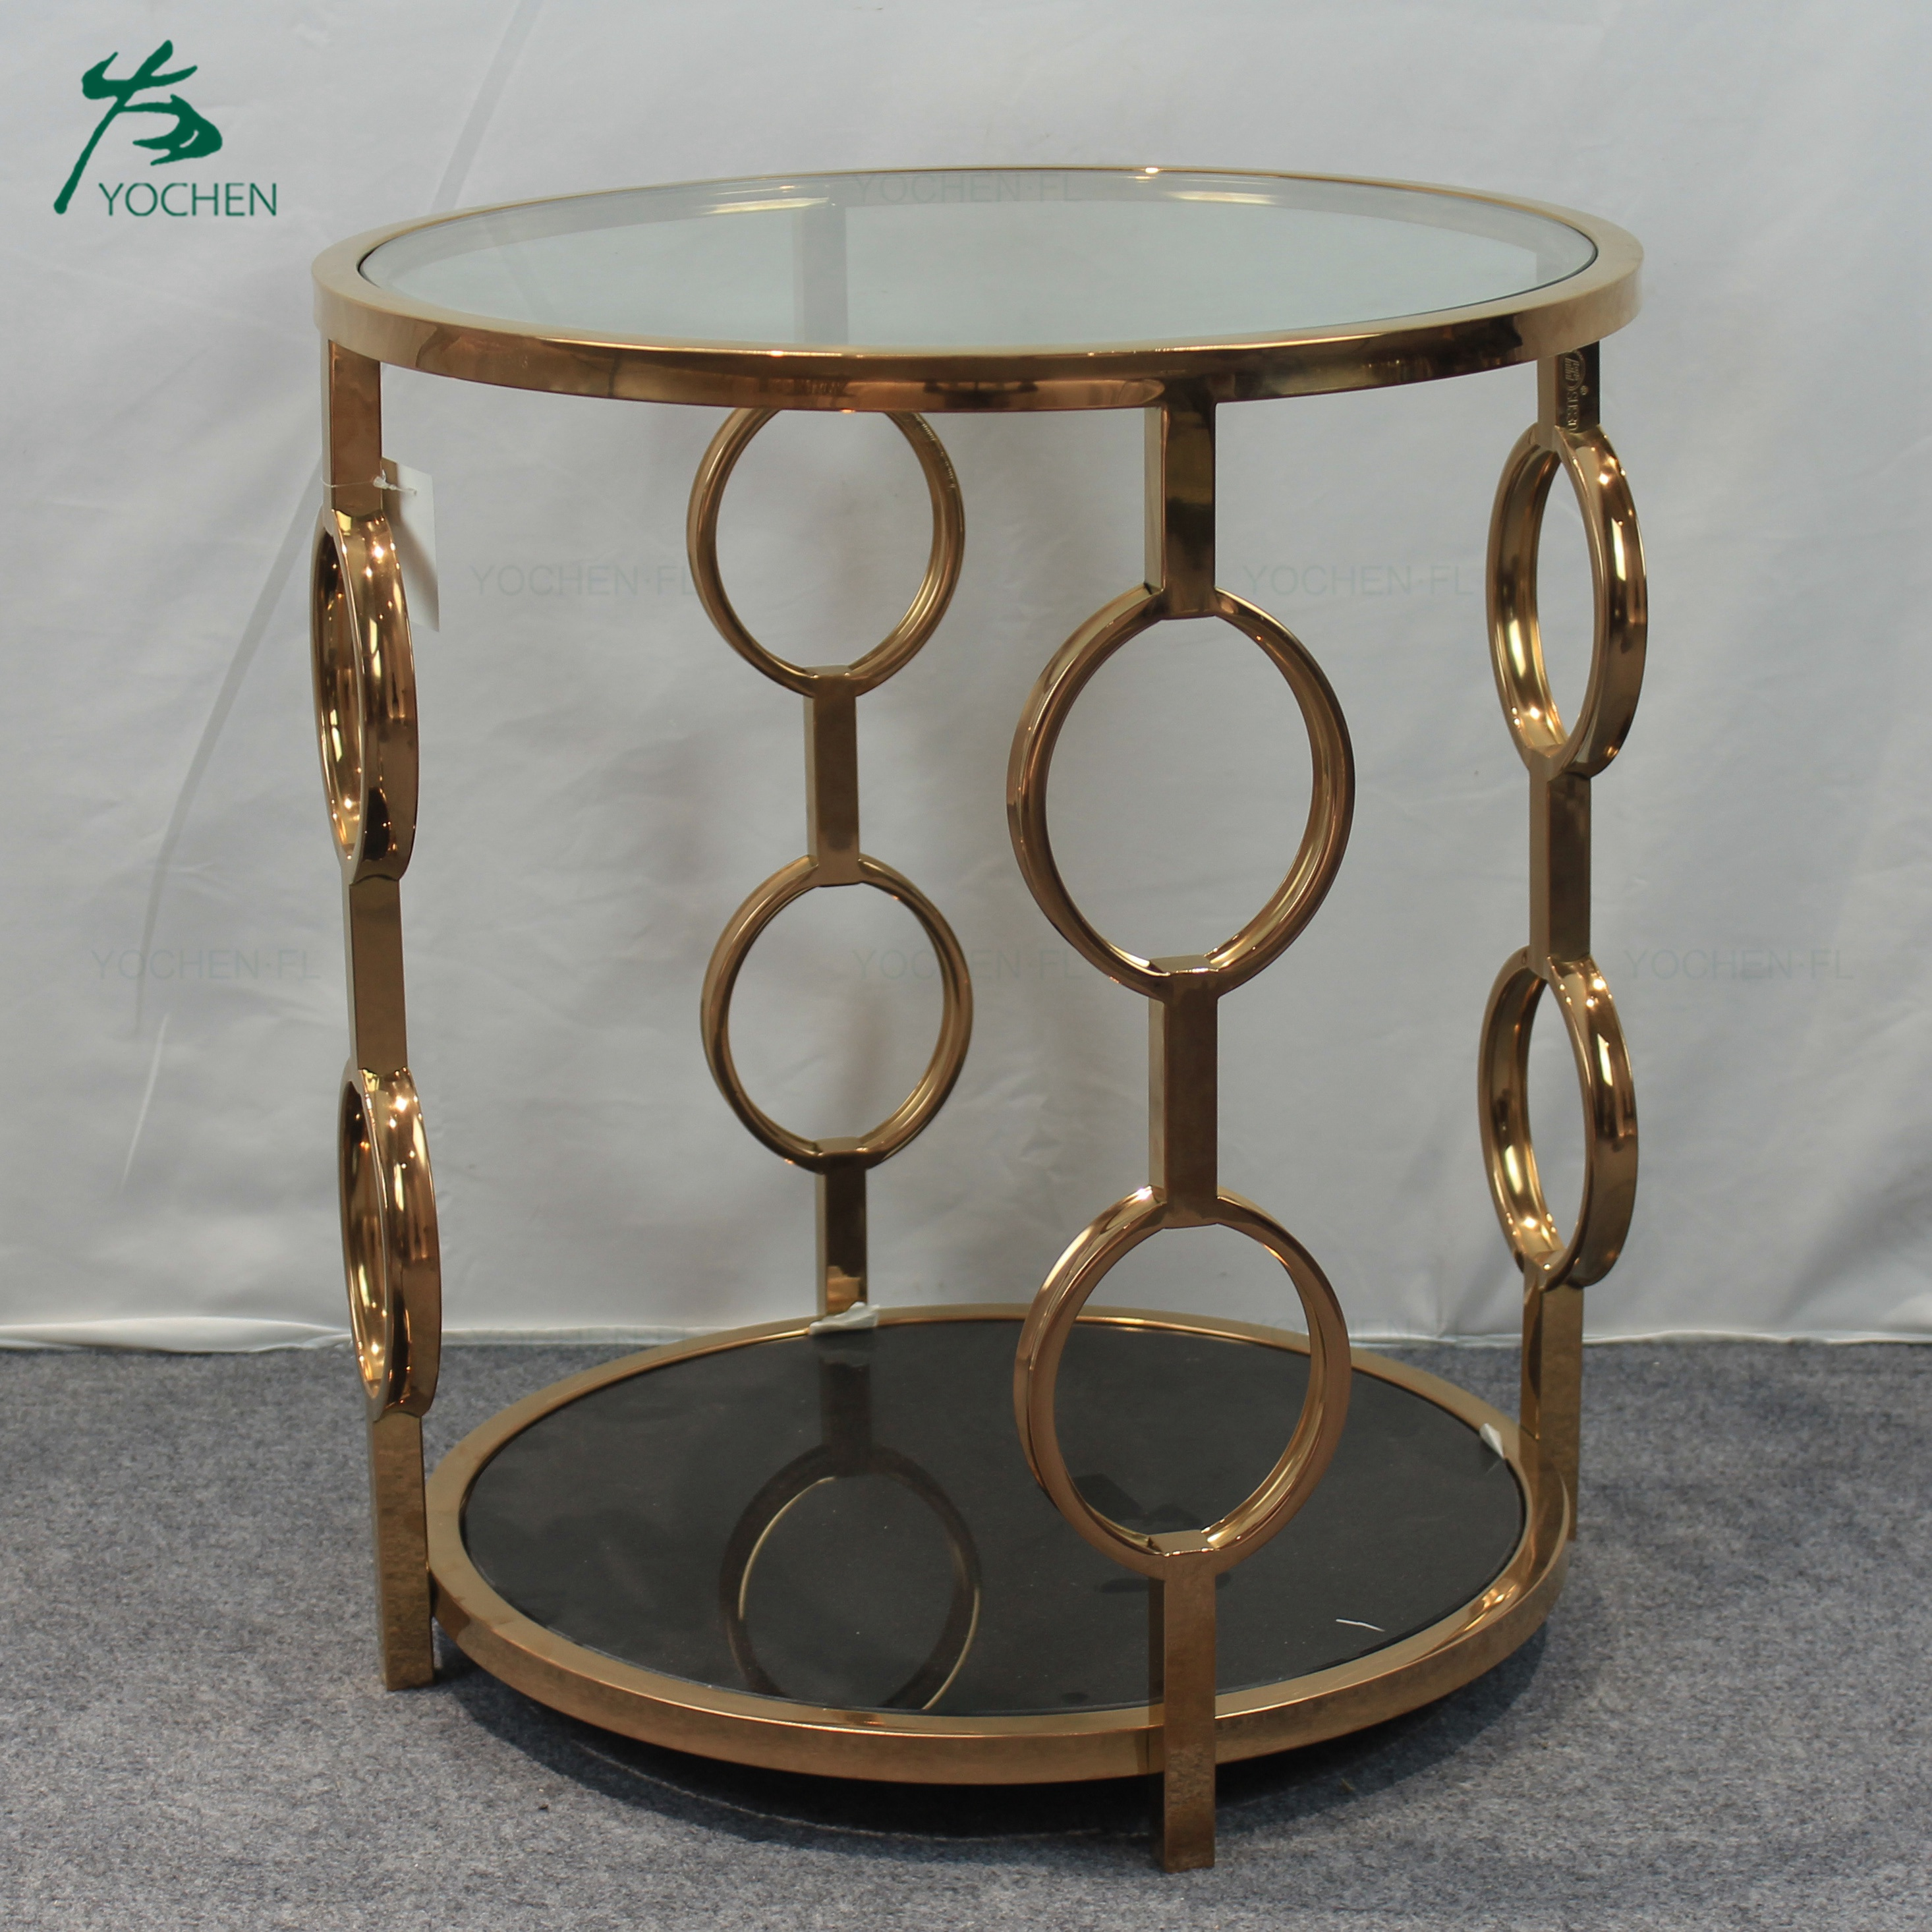 shining golden stainless steel round tea table